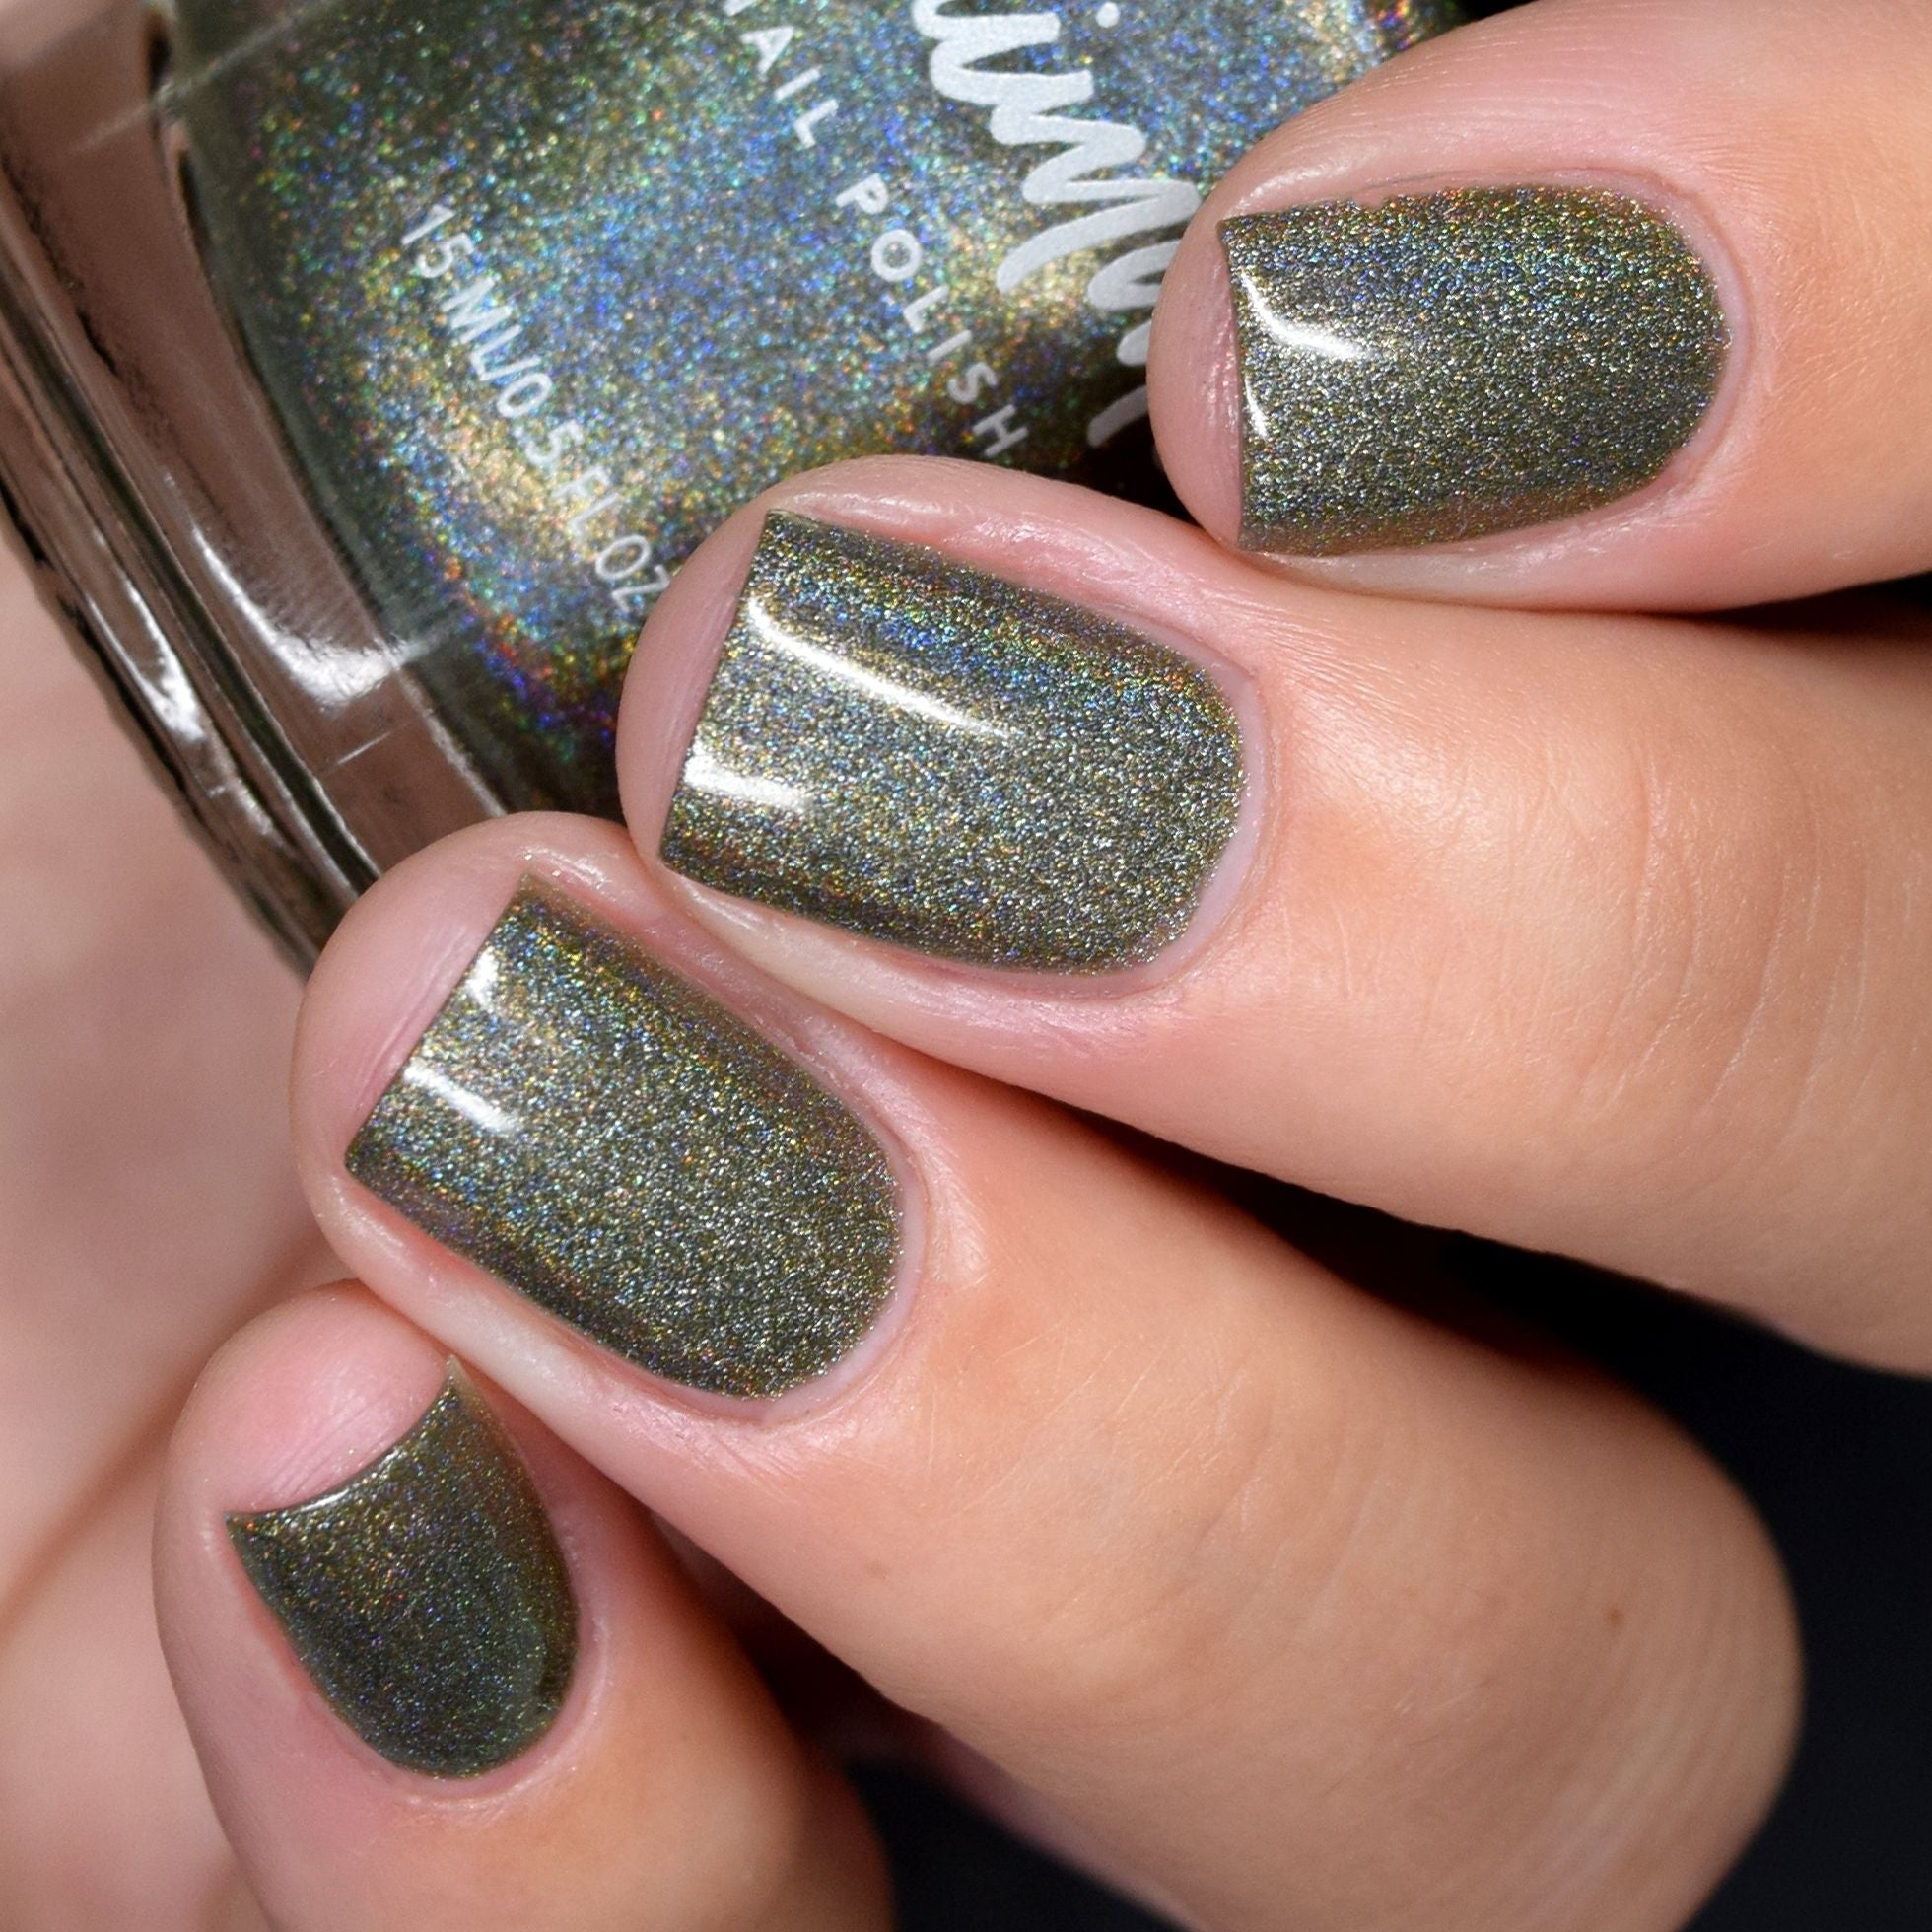 KBShimmer - Fully Booked